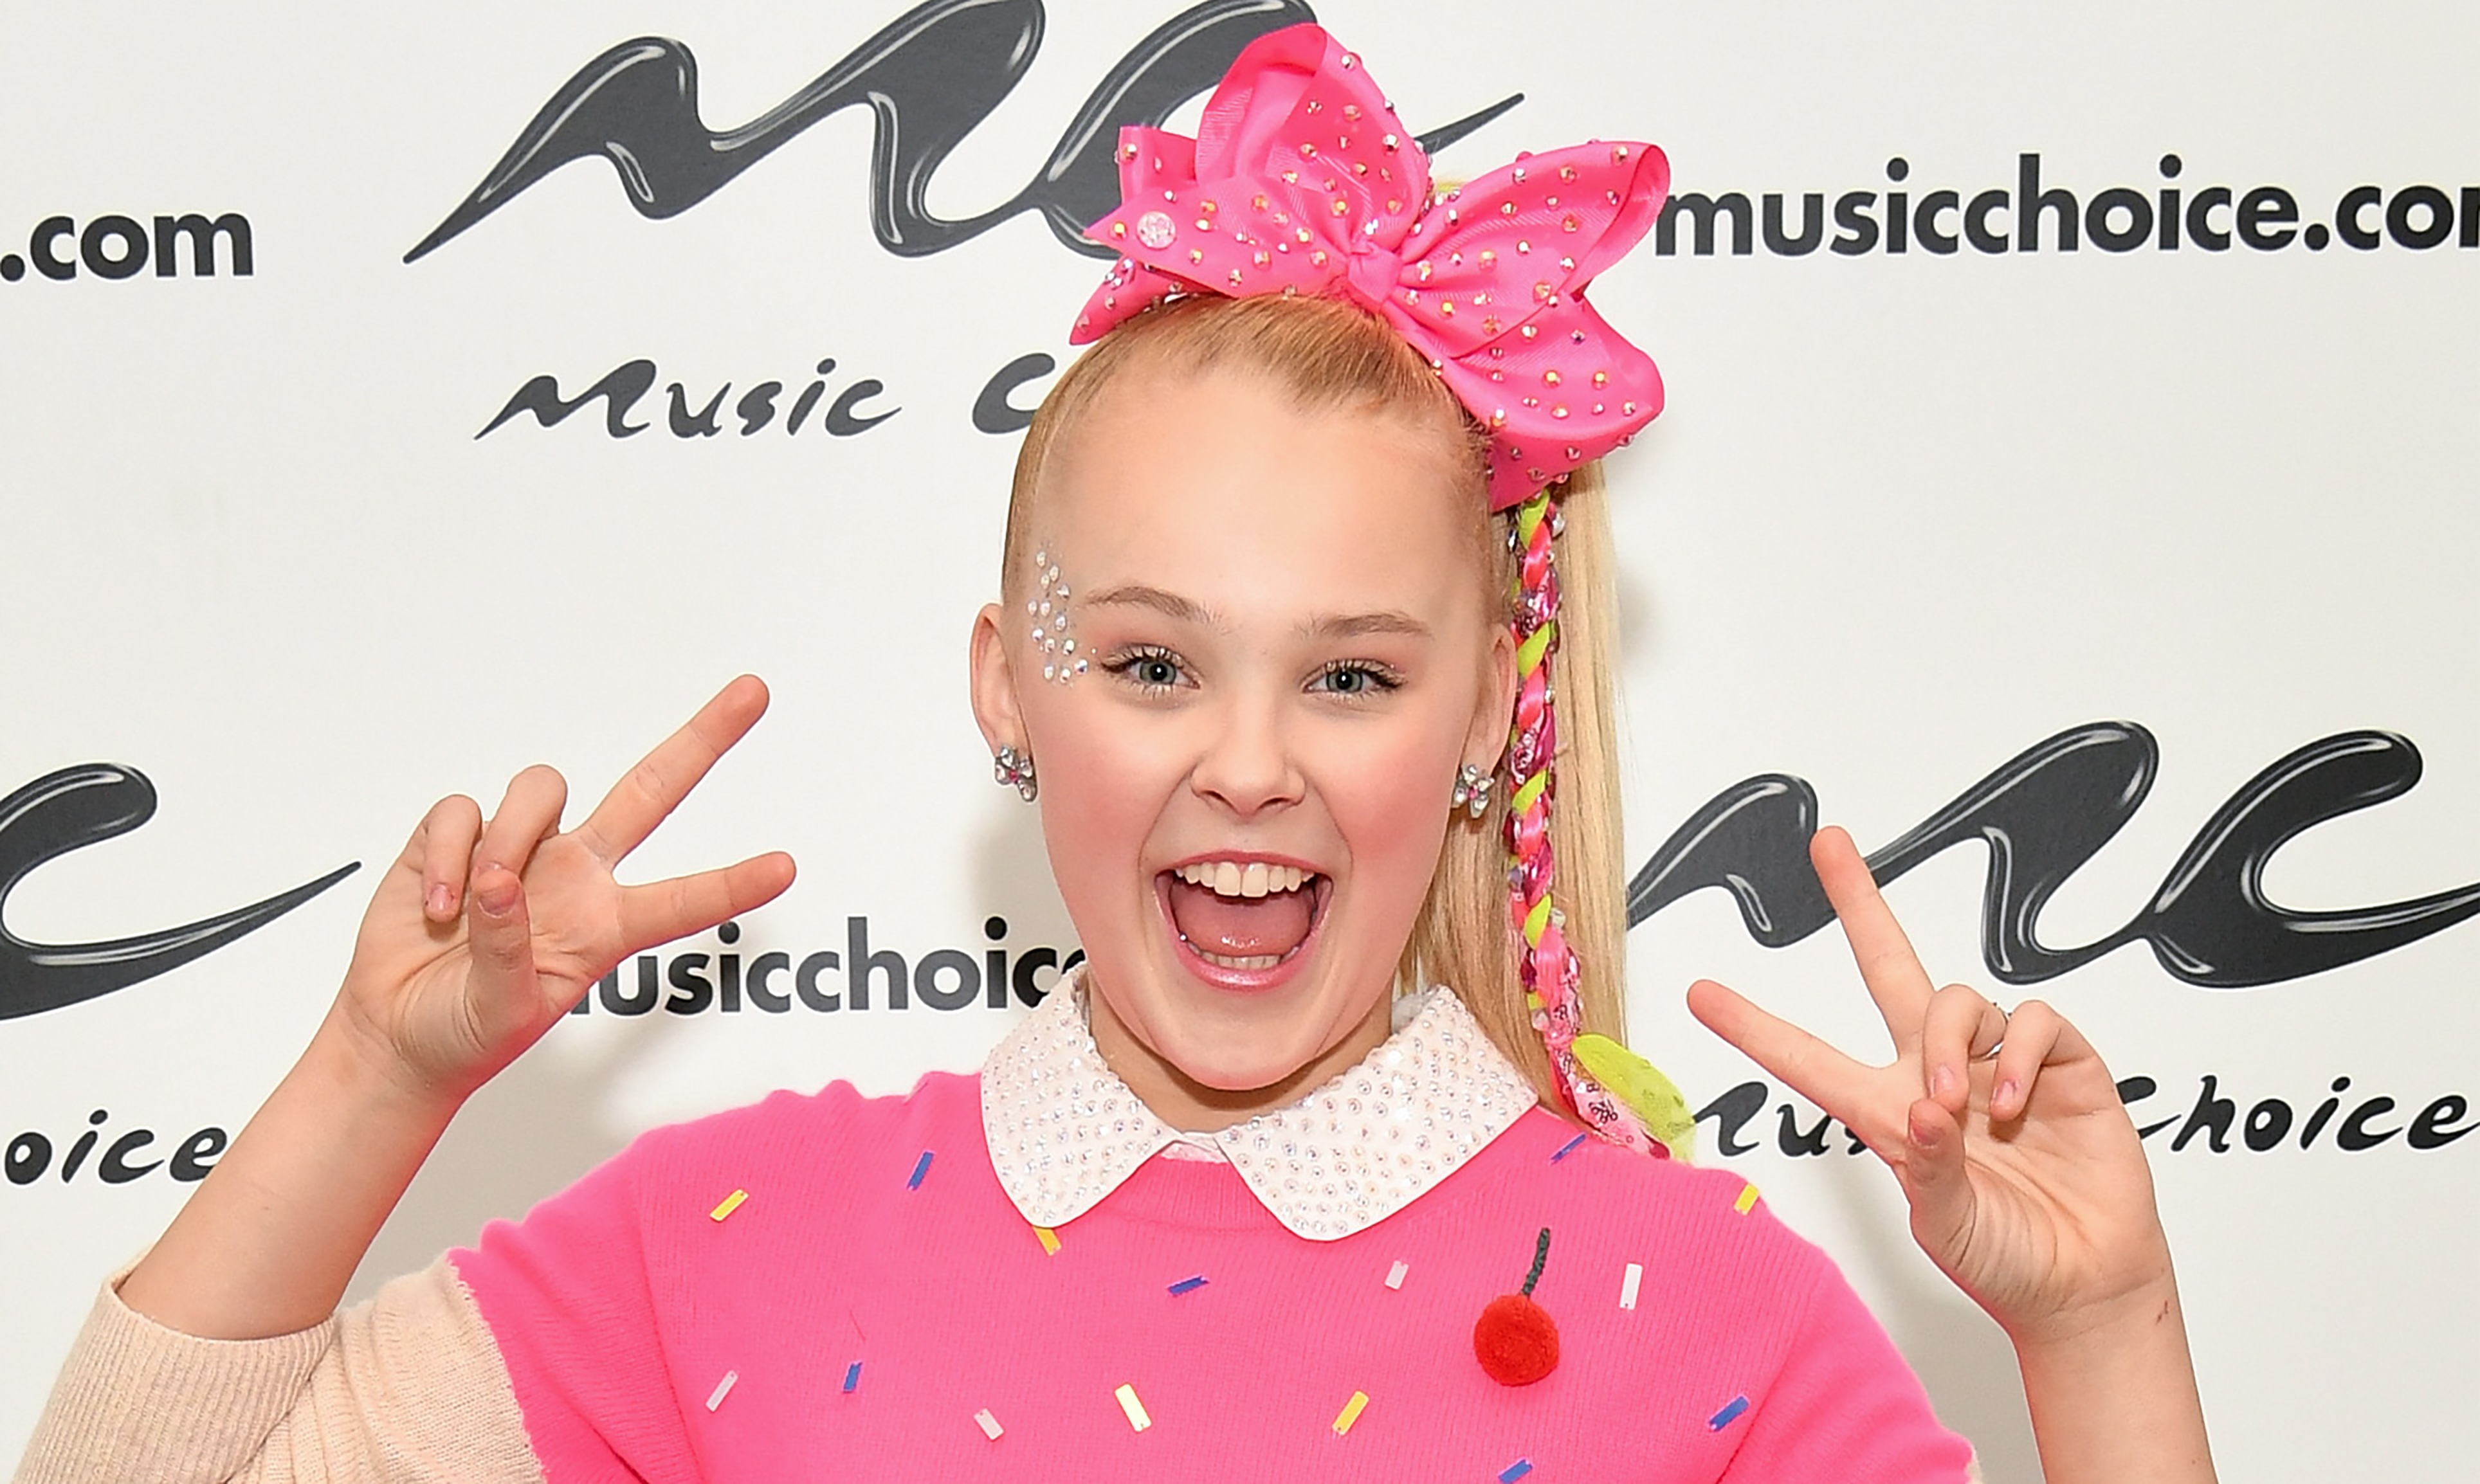 b3bceeeac Is JoJo Siwa Real  Dance Moms Star Confirms Persona Is Not Fake